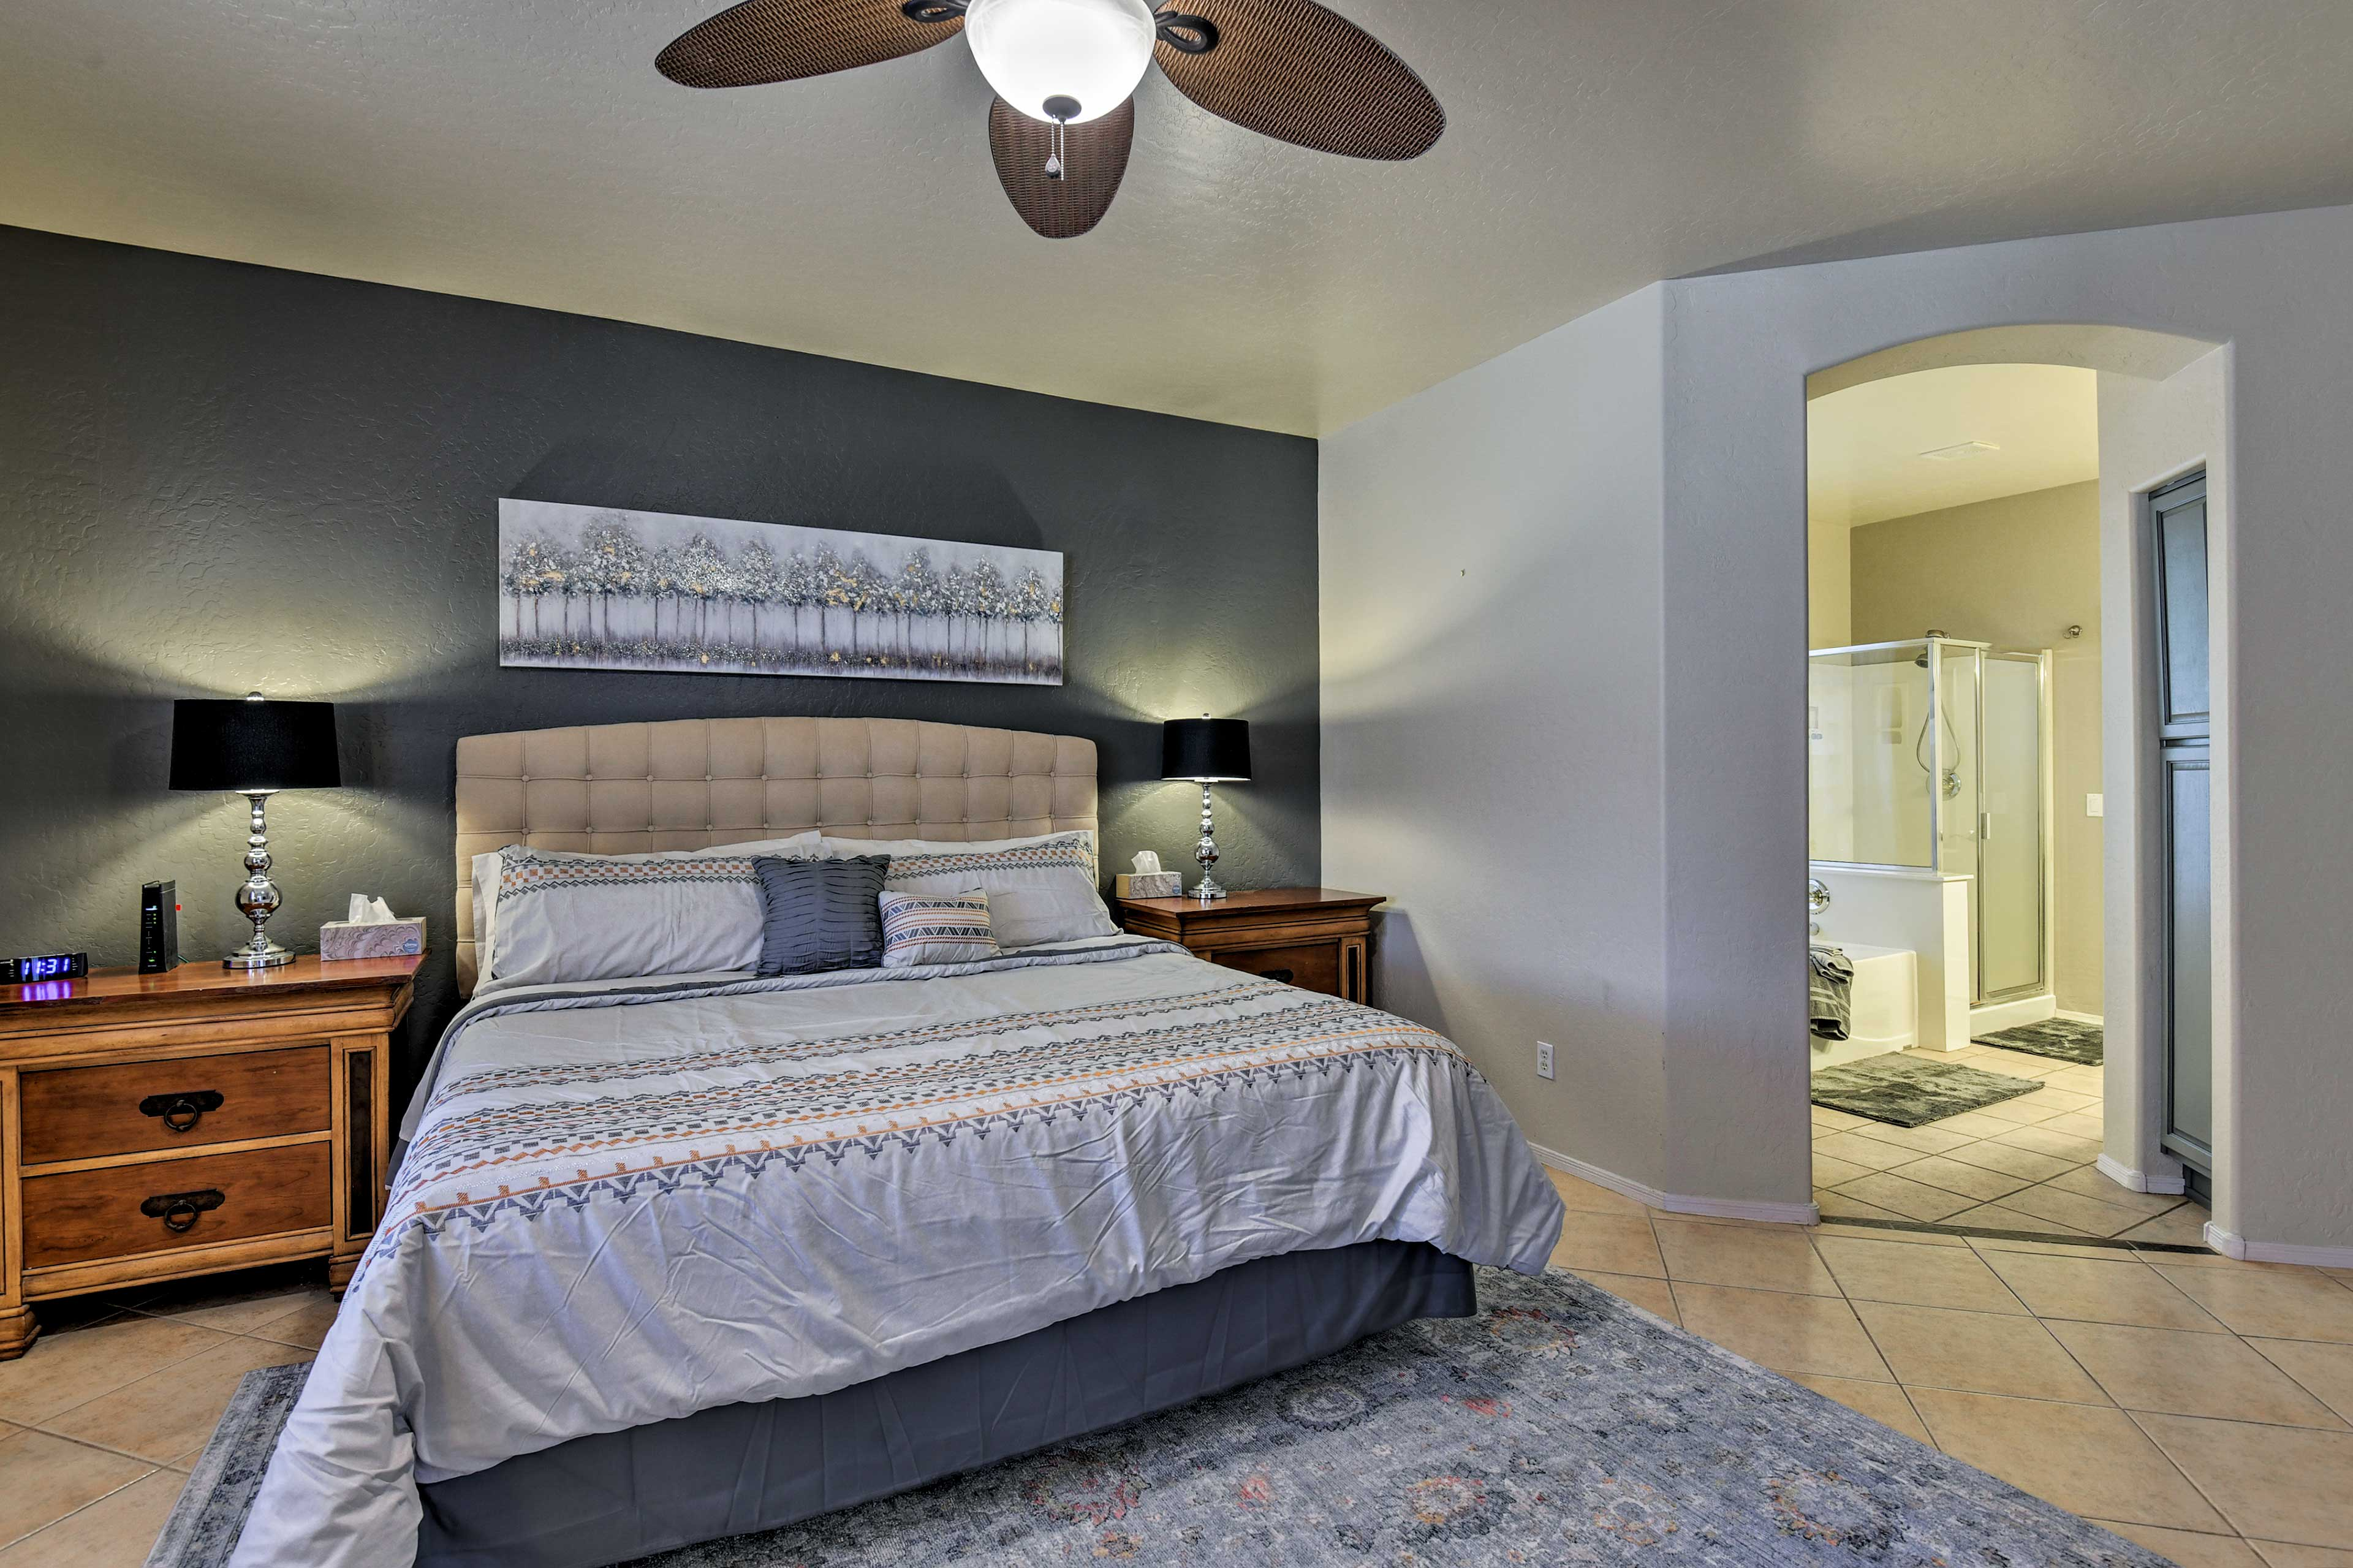 The master suite hosts a plush king-sized bed and en-suite bathroom.